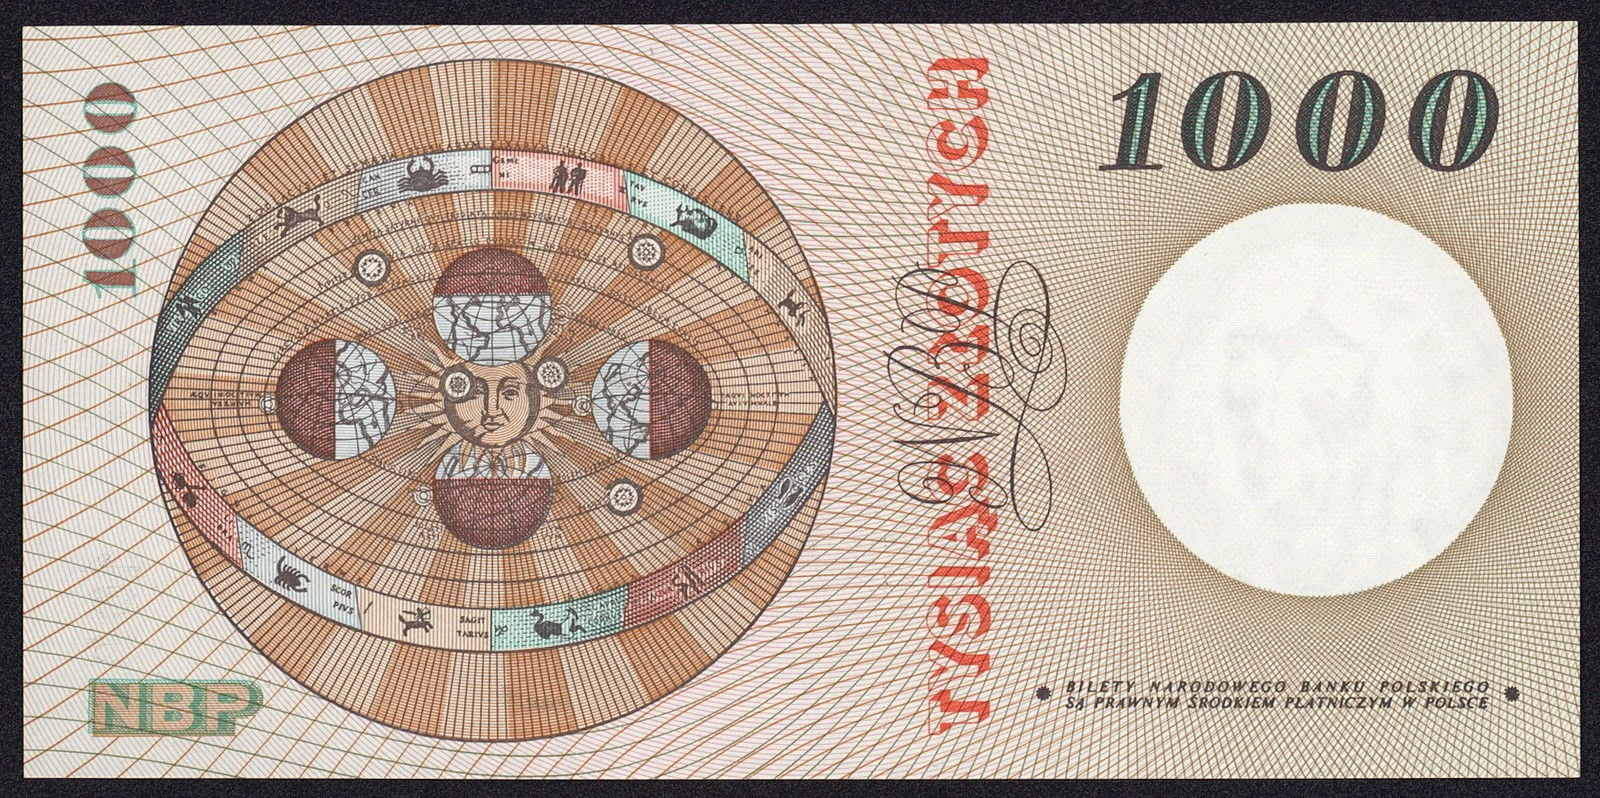 1000 Polish Zloty banknote 1965 Copernican heliocentric system